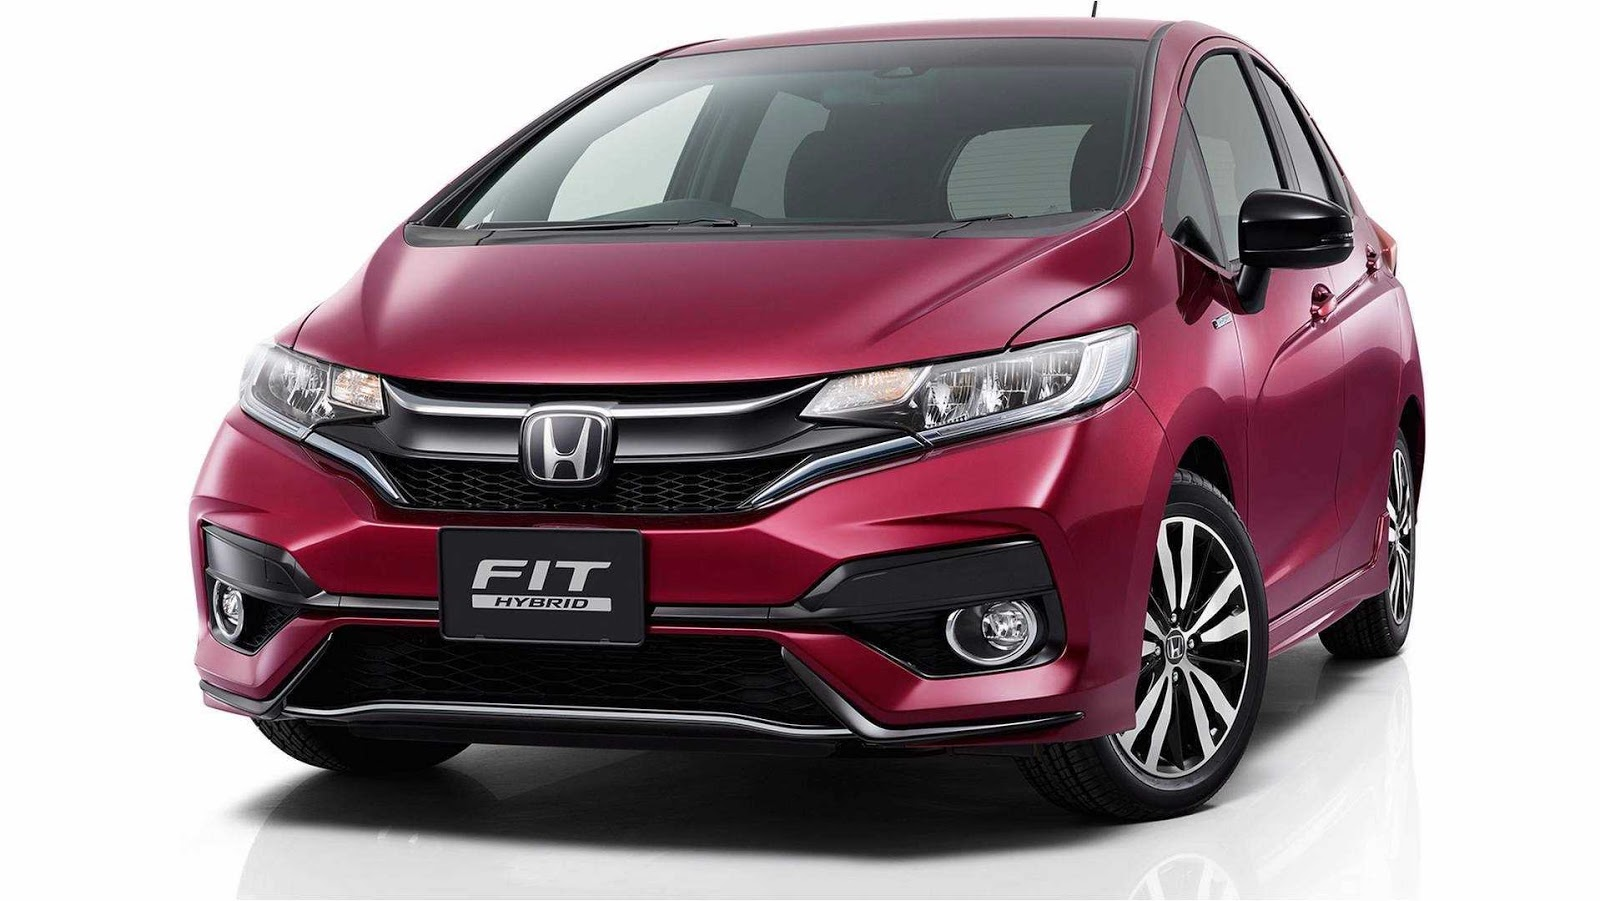 2018 honda fit jazz reveals itself on japanese website carscoops. Black Bedroom Furniture Sets. Home Design Ideas